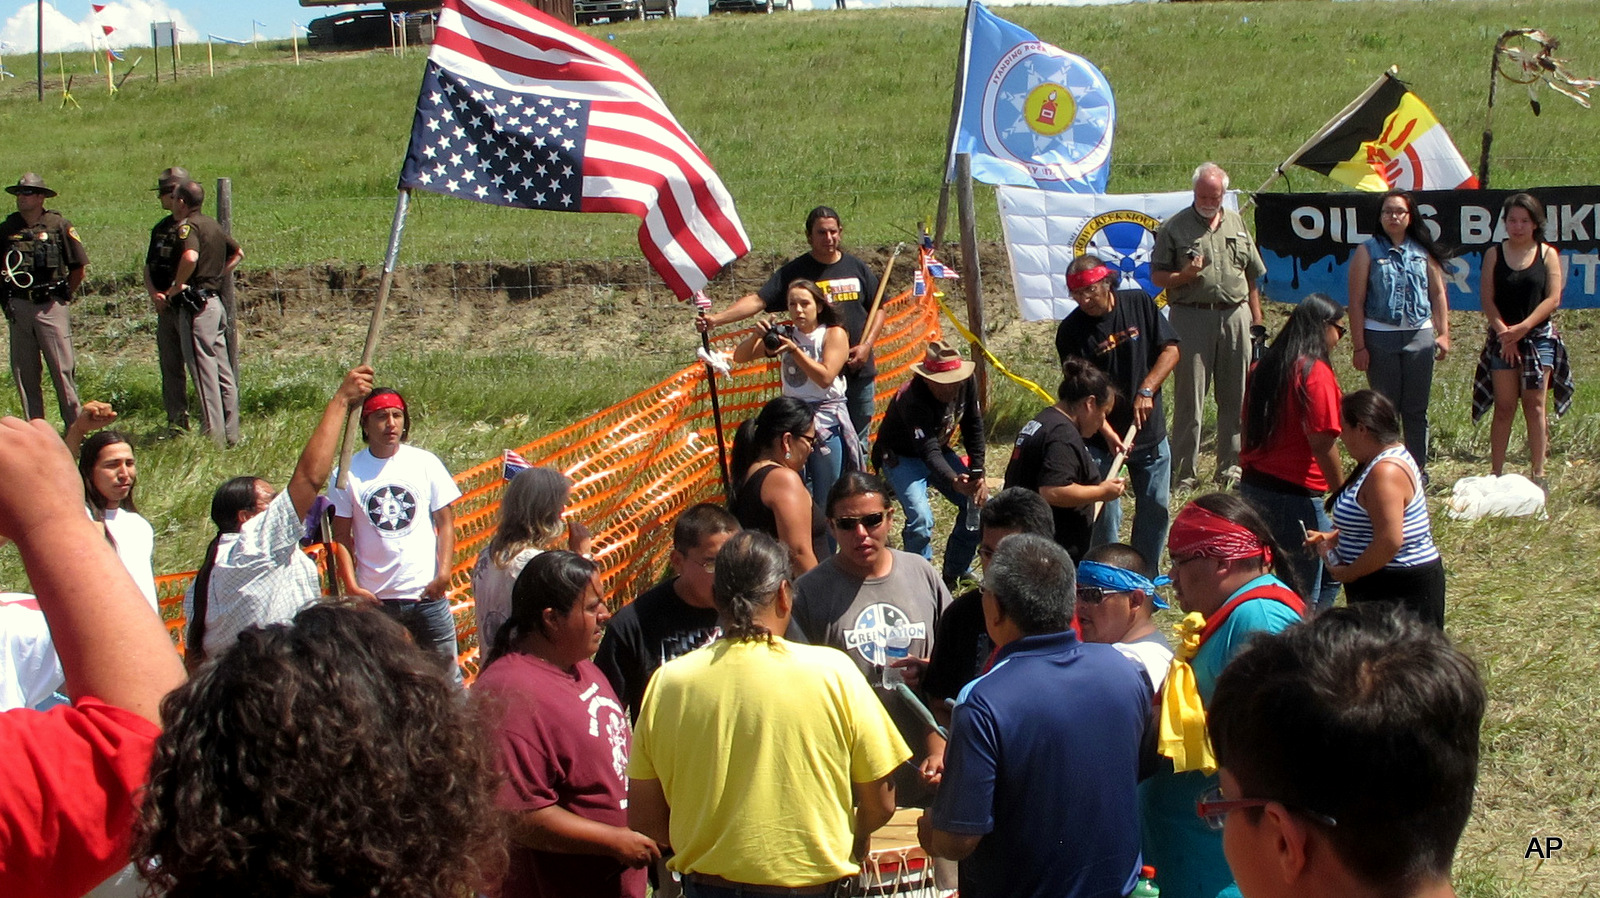 Native Americans protest the Dakota Access oil pipeline on Friday, Aug. 12, 2016 near the Standing Rock Sioux reservation in southern North Dakota.